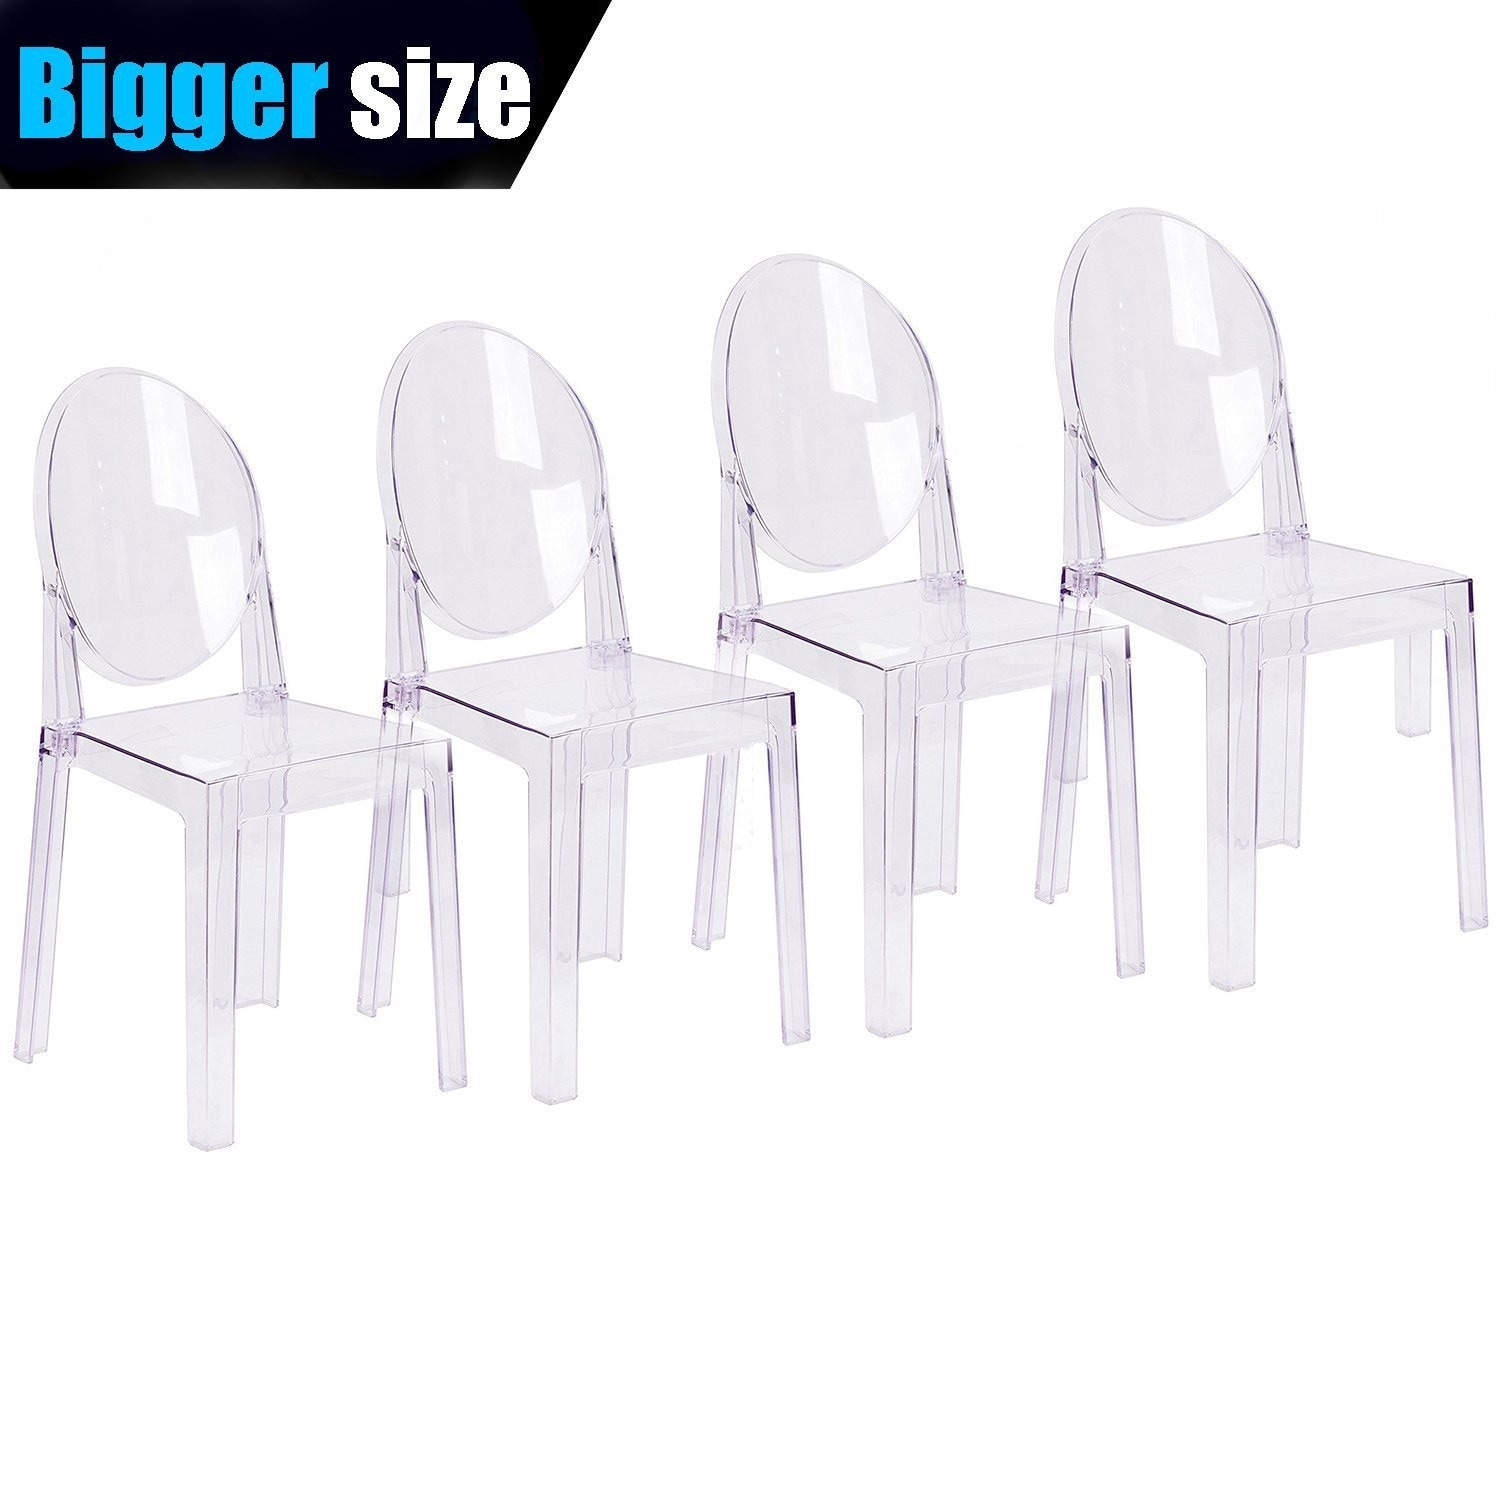 Plastic Clear Chair 2xhome Set Of 4 Larger Clear Plastic Dining Chairs Designer Side Armless Retro Set For Living Room Kitchen Transparent Crystal